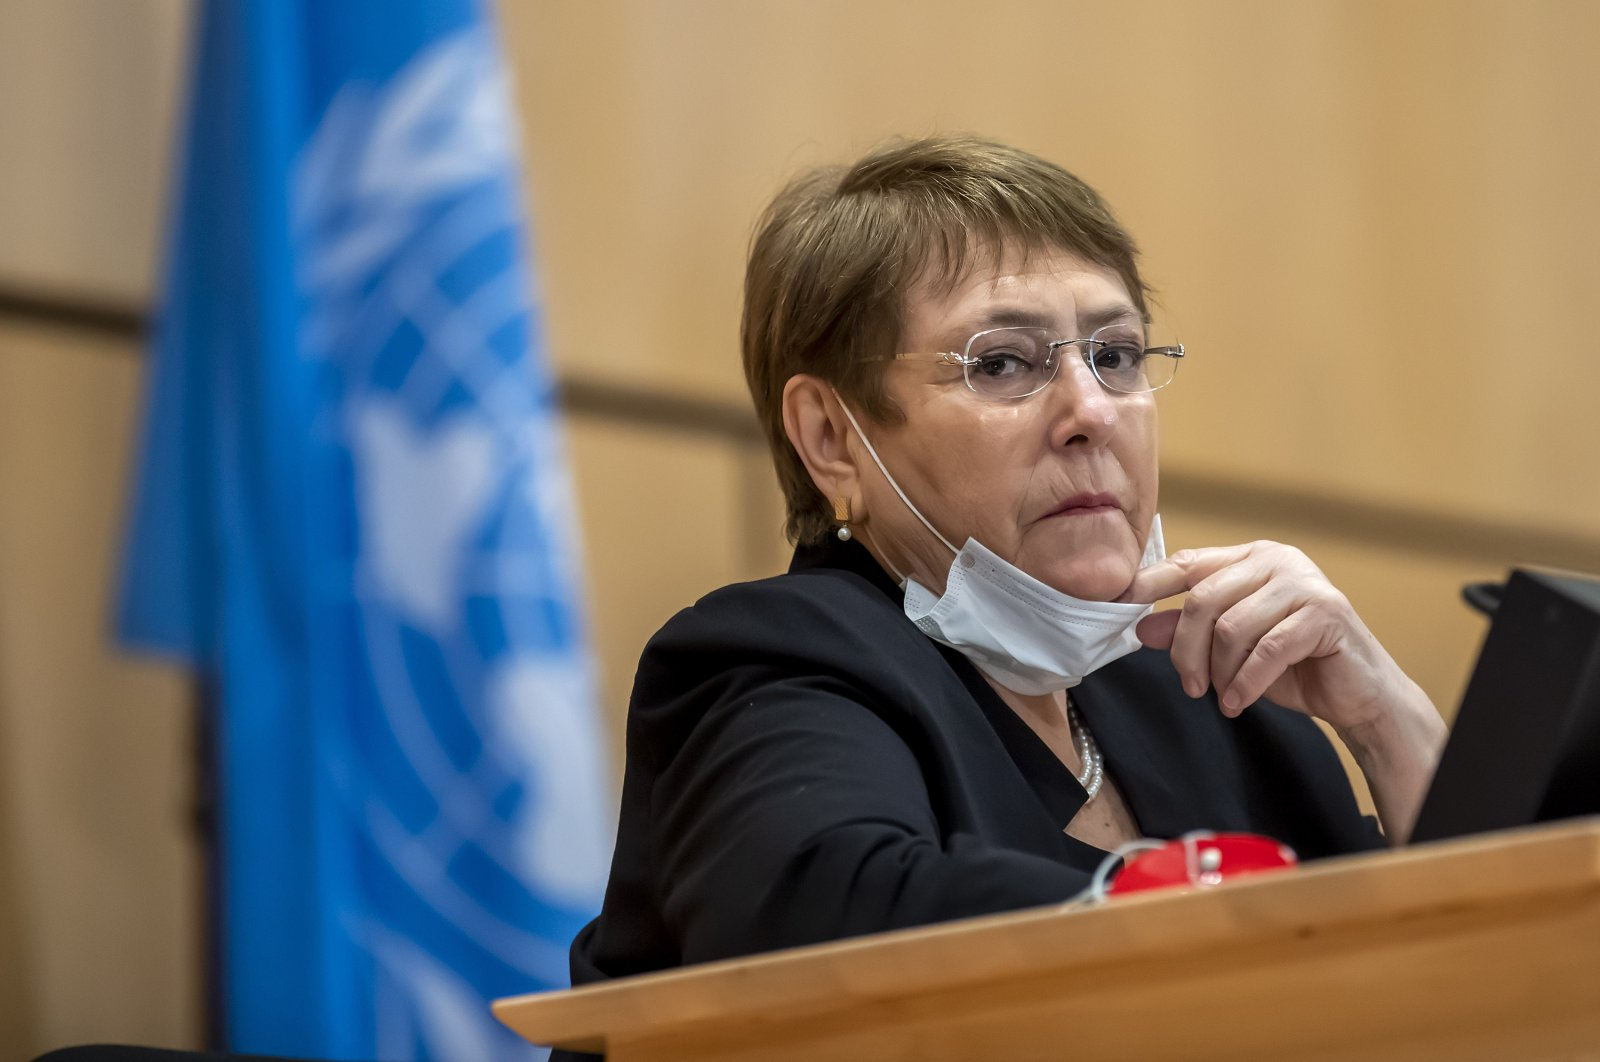 High Commissioner for Human Rights Michelle Bachelet attends a meeting of the Human Rights Council of the United Nations in Geneva, Switzerland, June 17, 2020. (AP Photo)